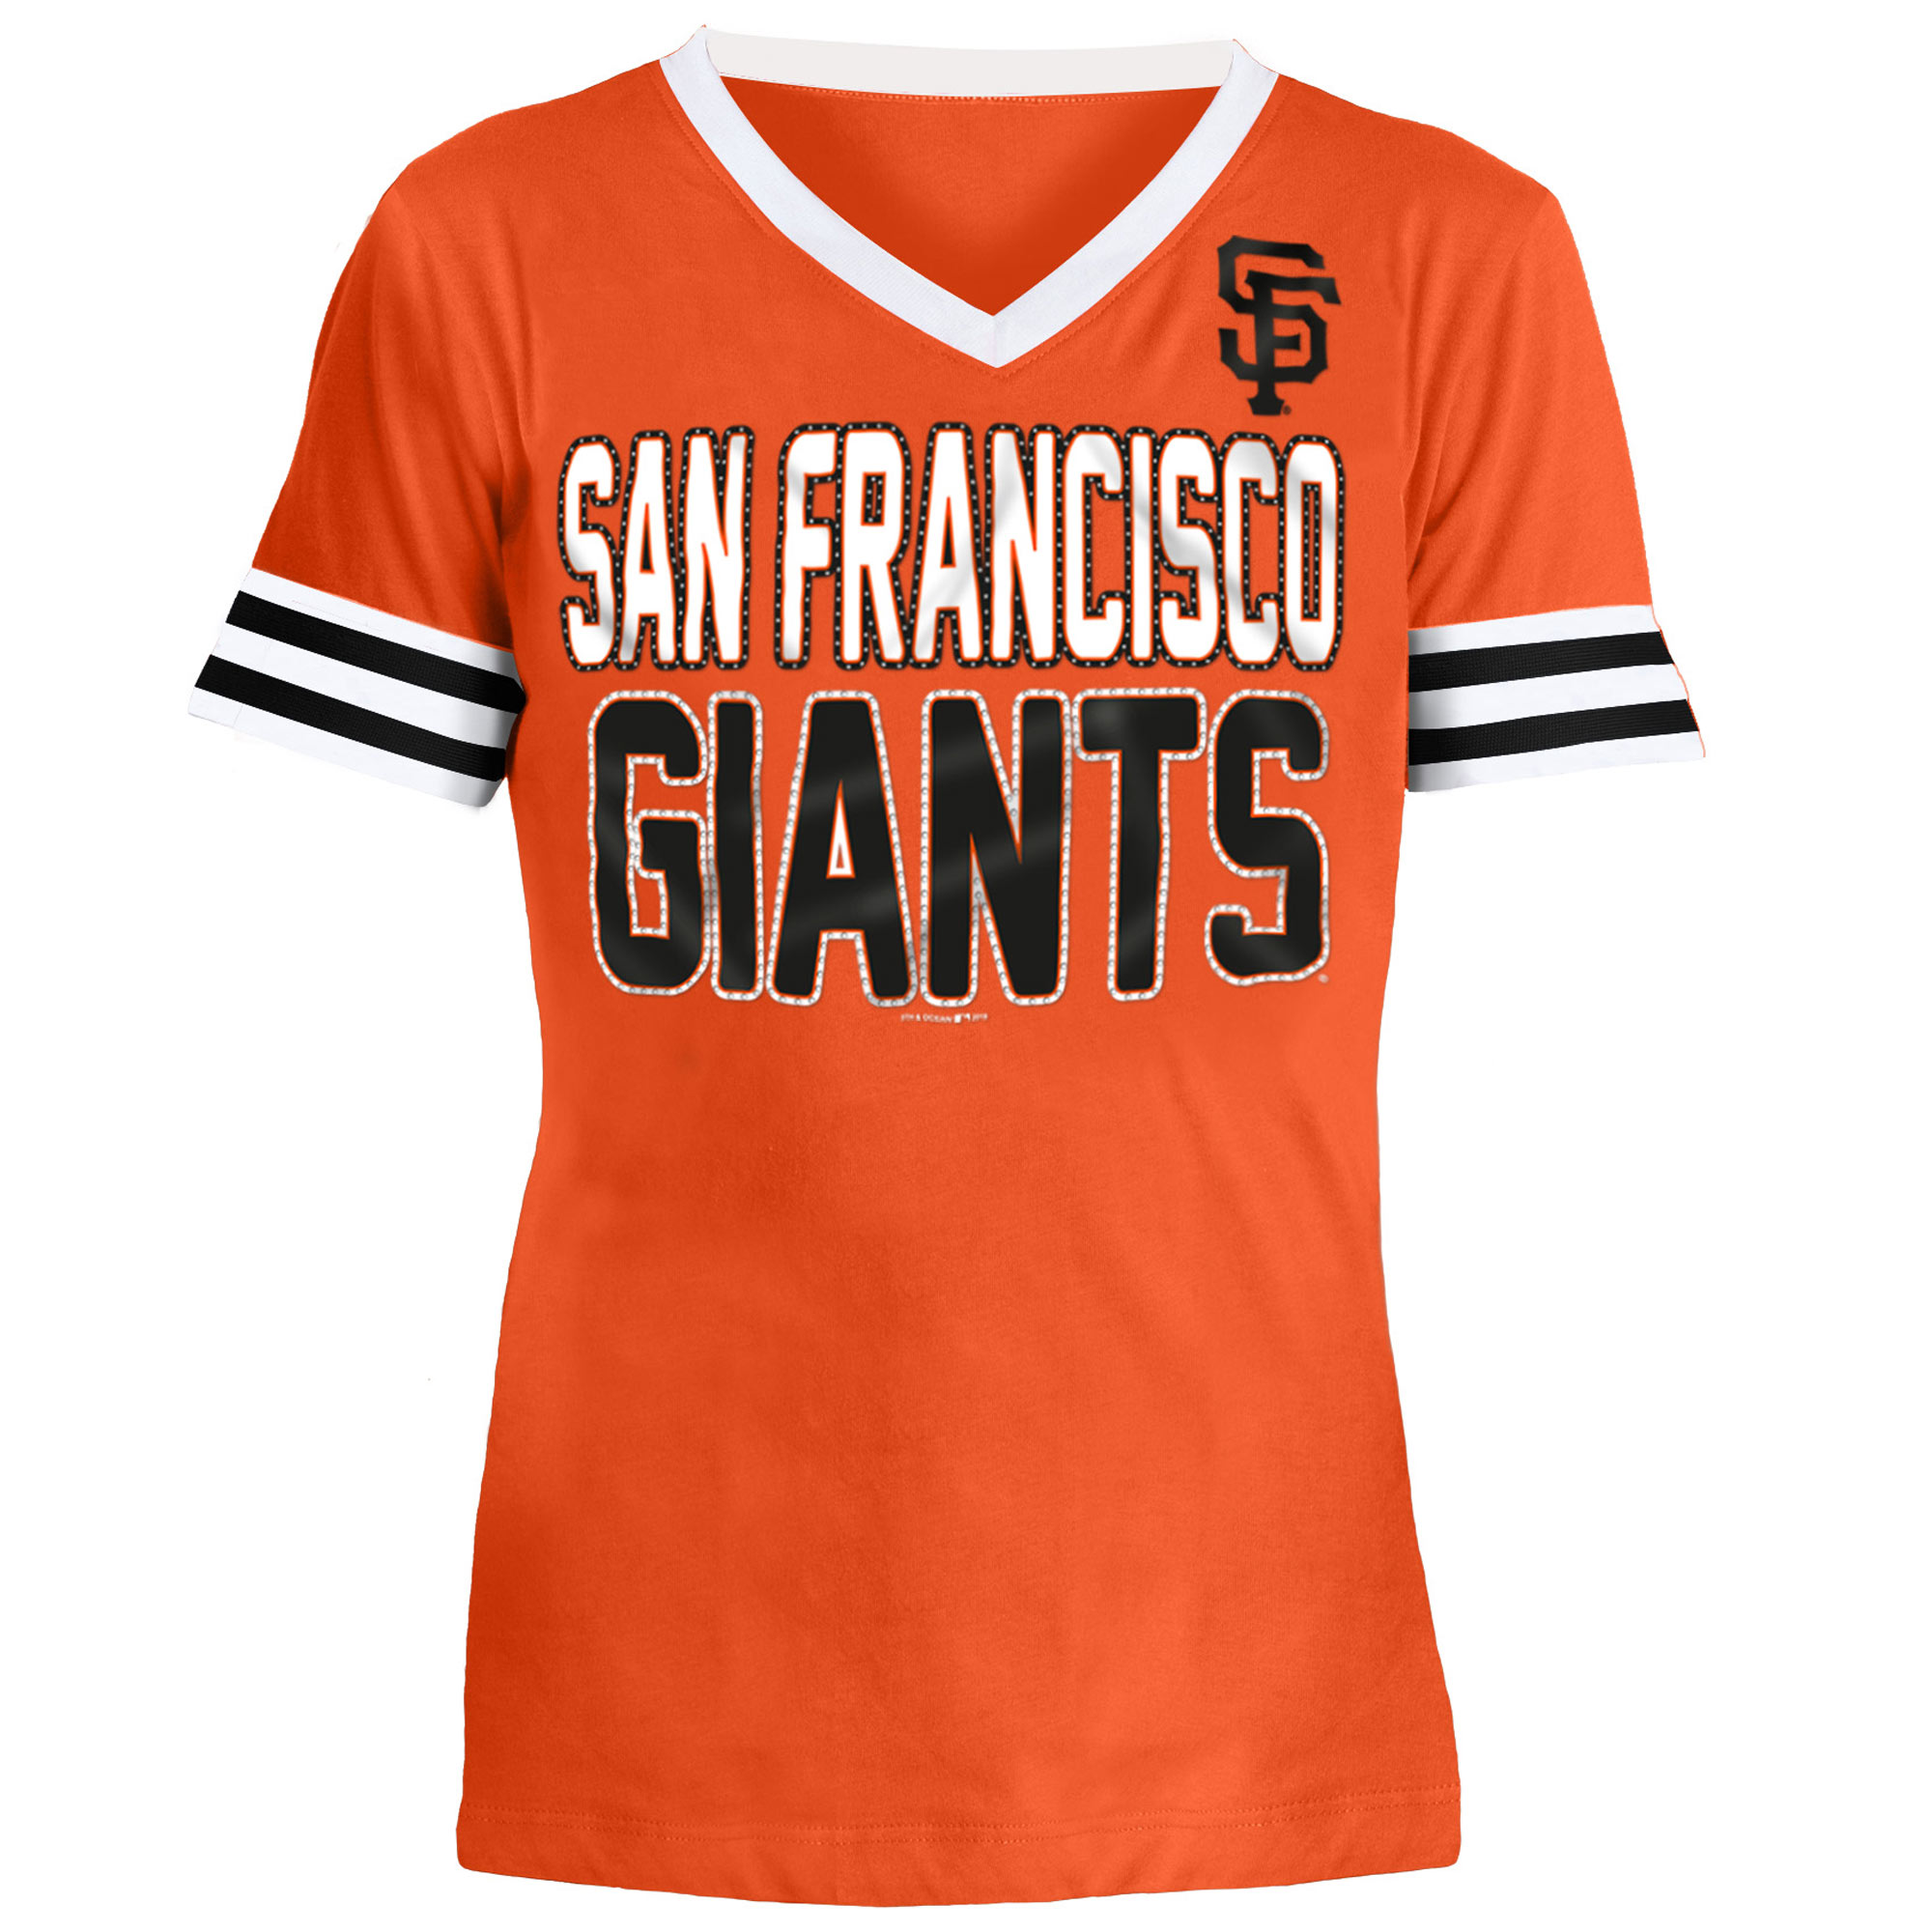 San Francisco Giants 5th & Ocean by New Era Youth Jersey T-Shirt with Contrast Trim - Orange